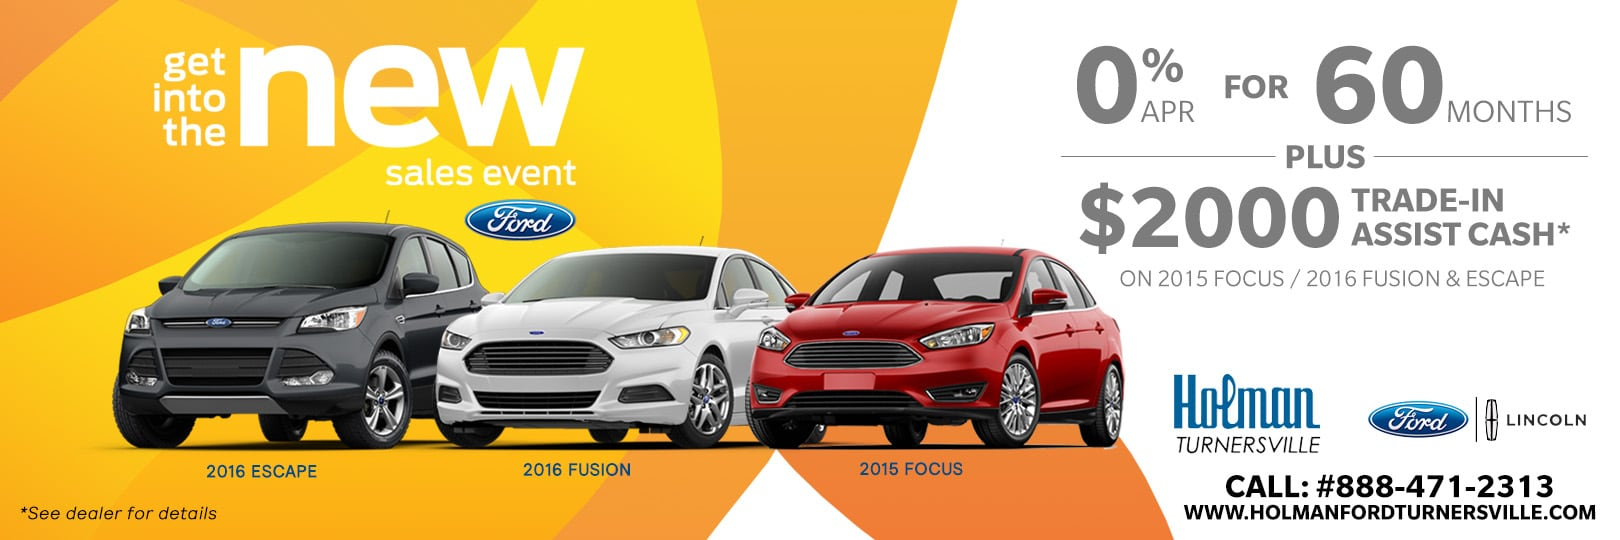 Holman Ford Turnersville >> Get Into The New Holman Ford Turnersville